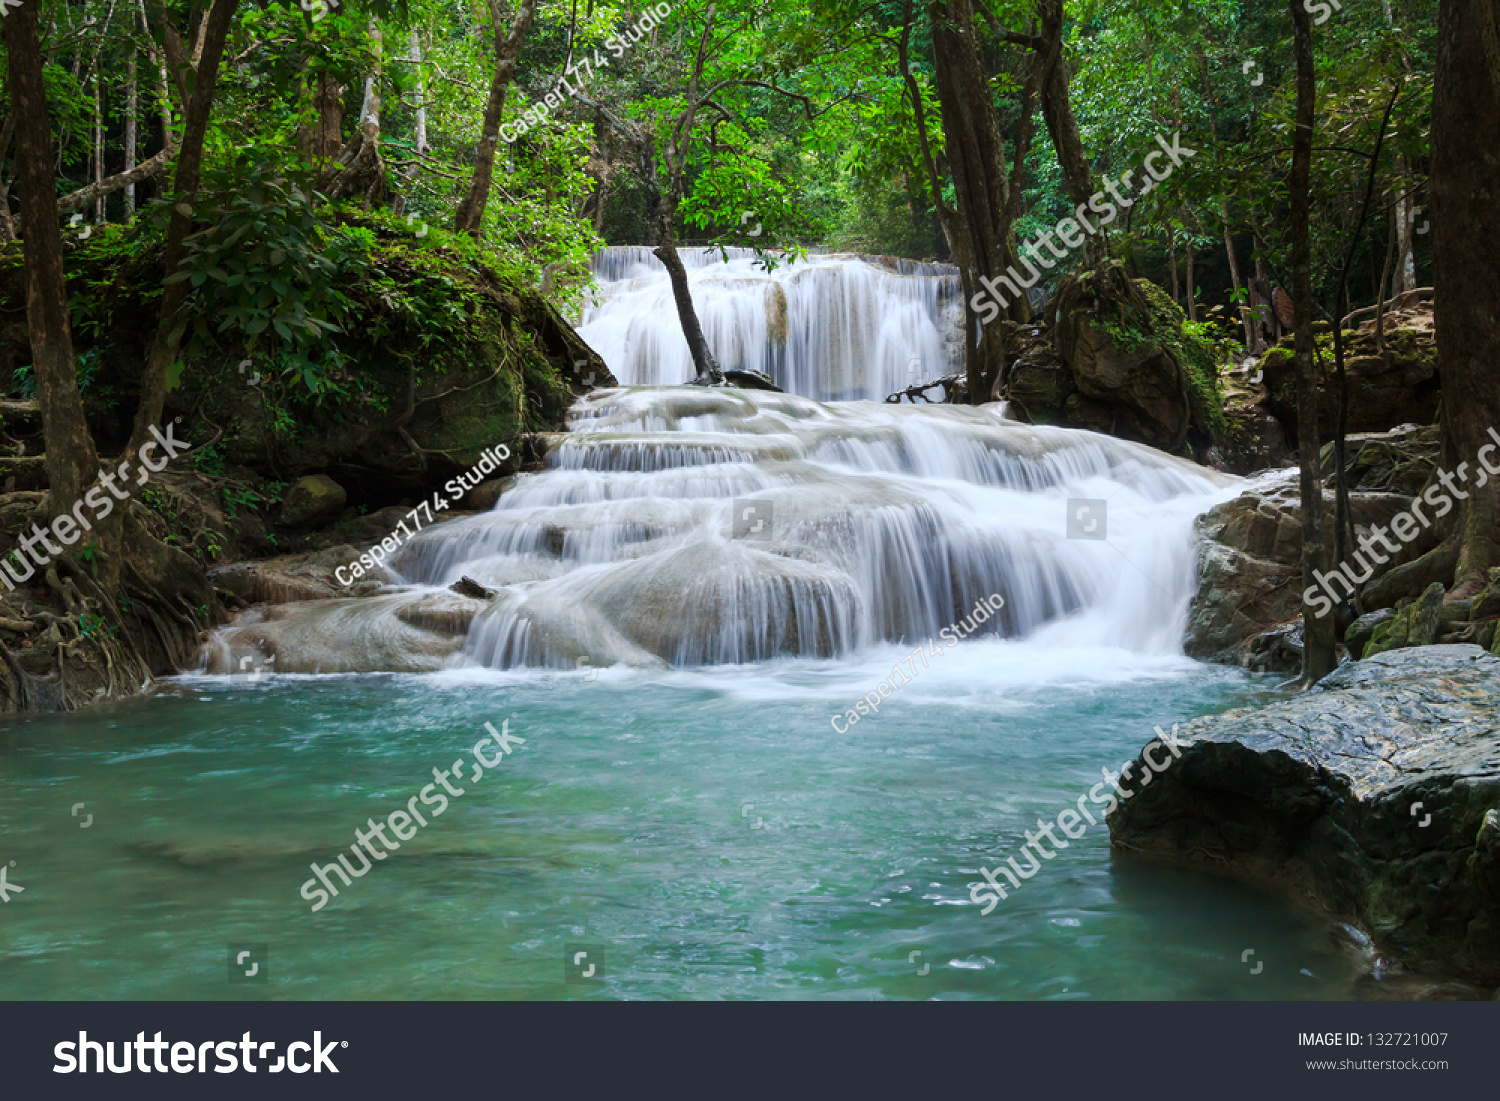 Waterfall In Erawan National Park, Level 1, Kanchanaburi ...